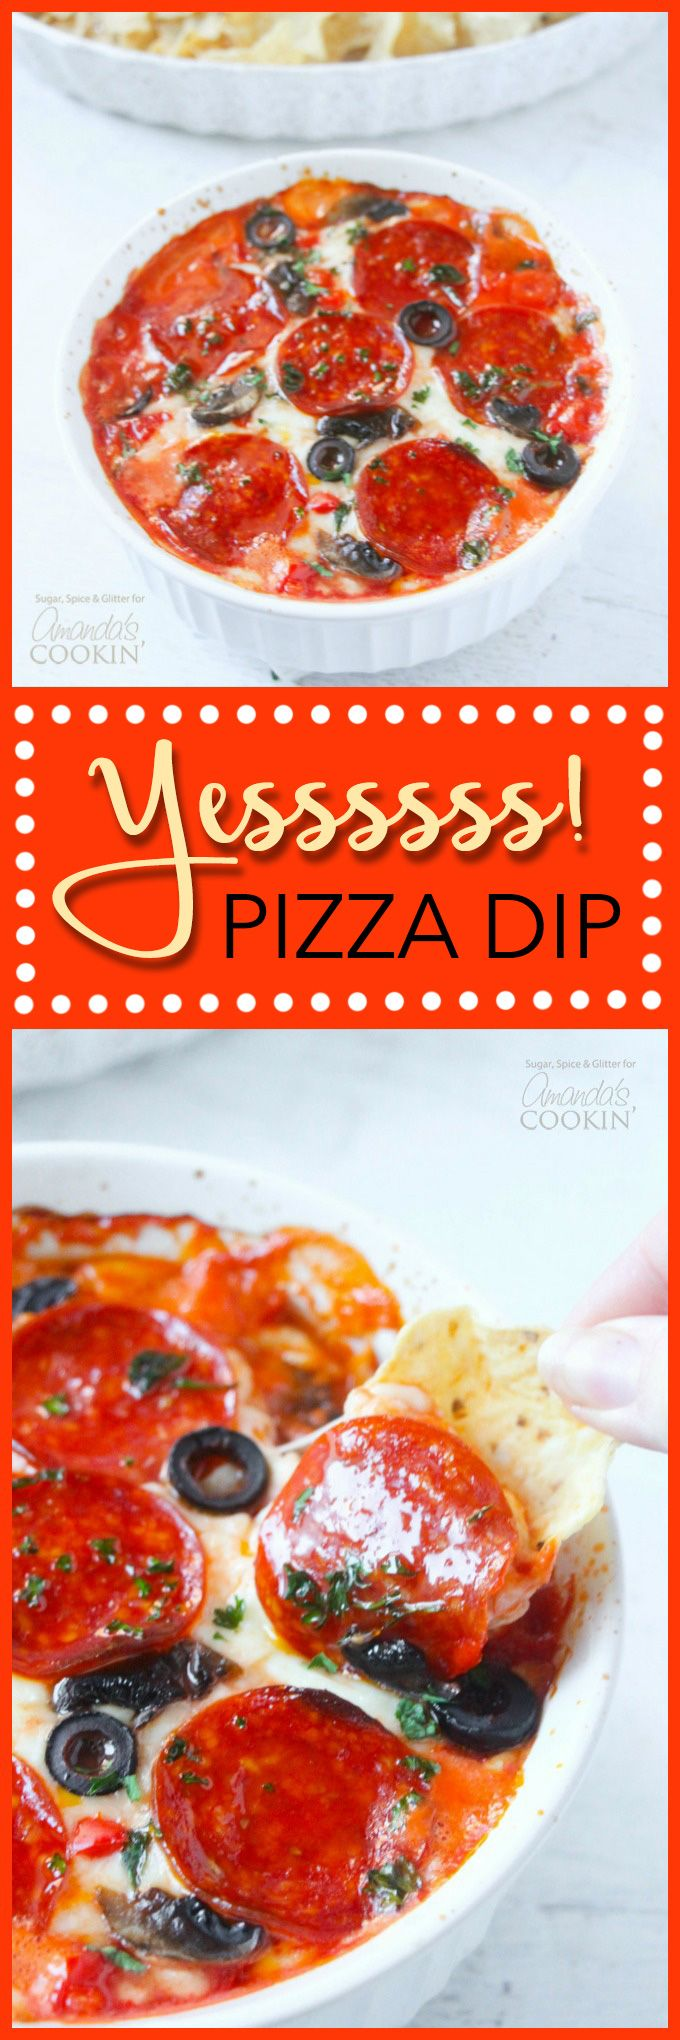 Amazing! Make this delicious pizza dip, perfect for the big game or just hanging out with friends. Serve with tortilla chips, bread sticks or big hunks of crusty bread!